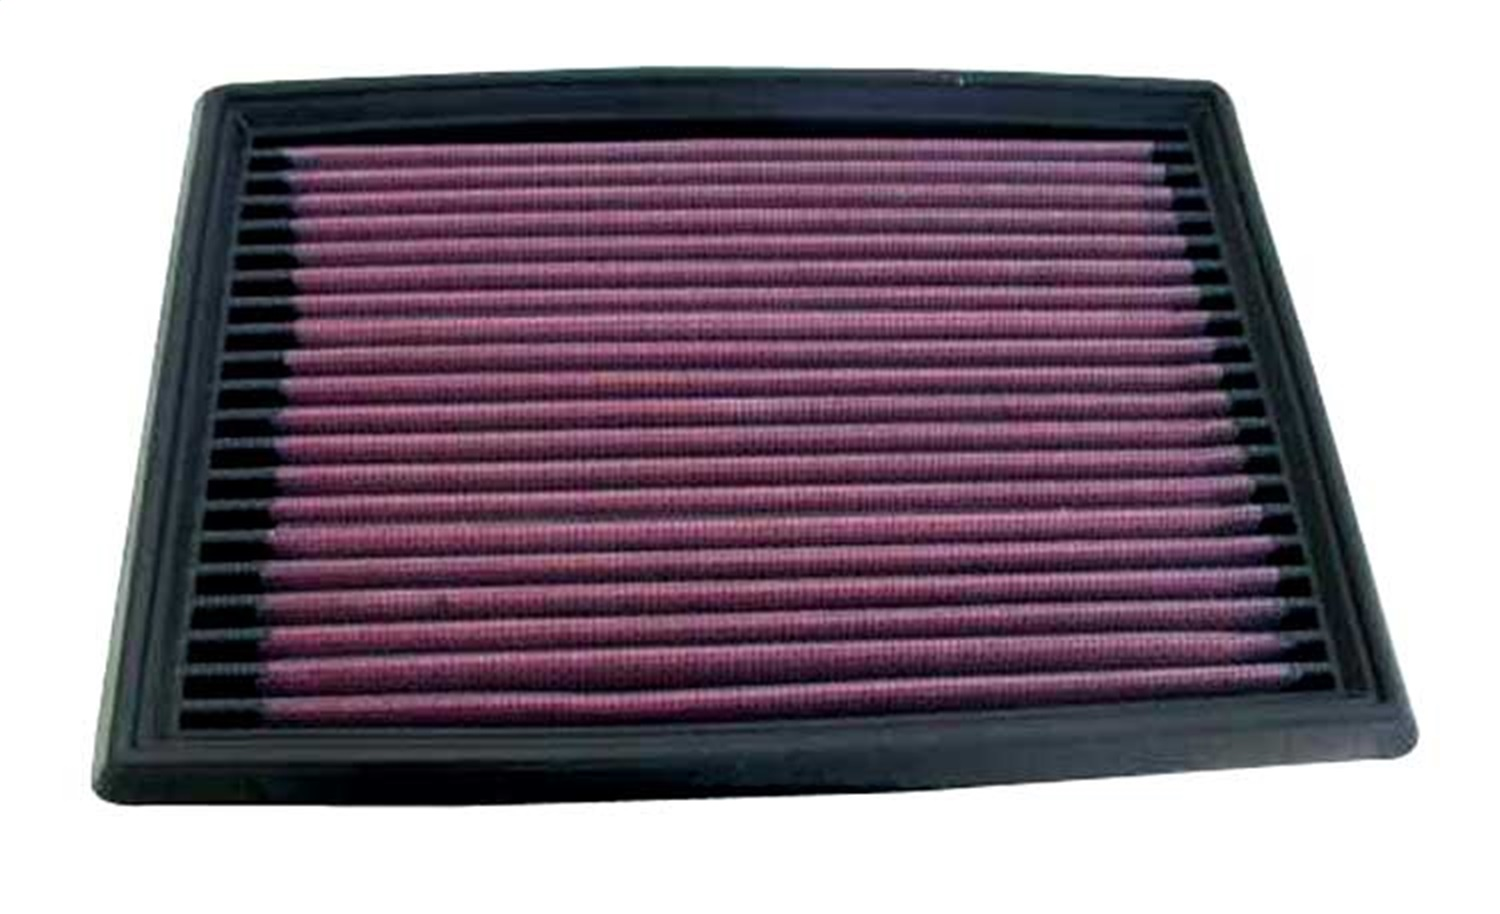 K&N Filters 33-2036 Air Filter Fits 90-00 300ZX Civic 33-2036